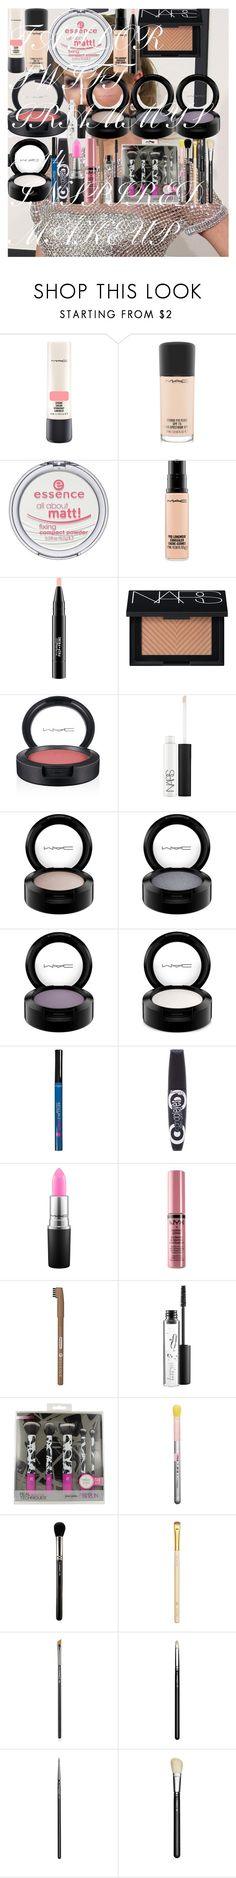 """""""TAYLOR SWIFT GRAMMYS 2014 INSPIRED MAKEUP"""" by oroartye-1 on Polyvore featuring beauty, MAC Cosmetics, Essence, NARS Cosmetics, L'Oréal Paris, Rimmel and NYX"""